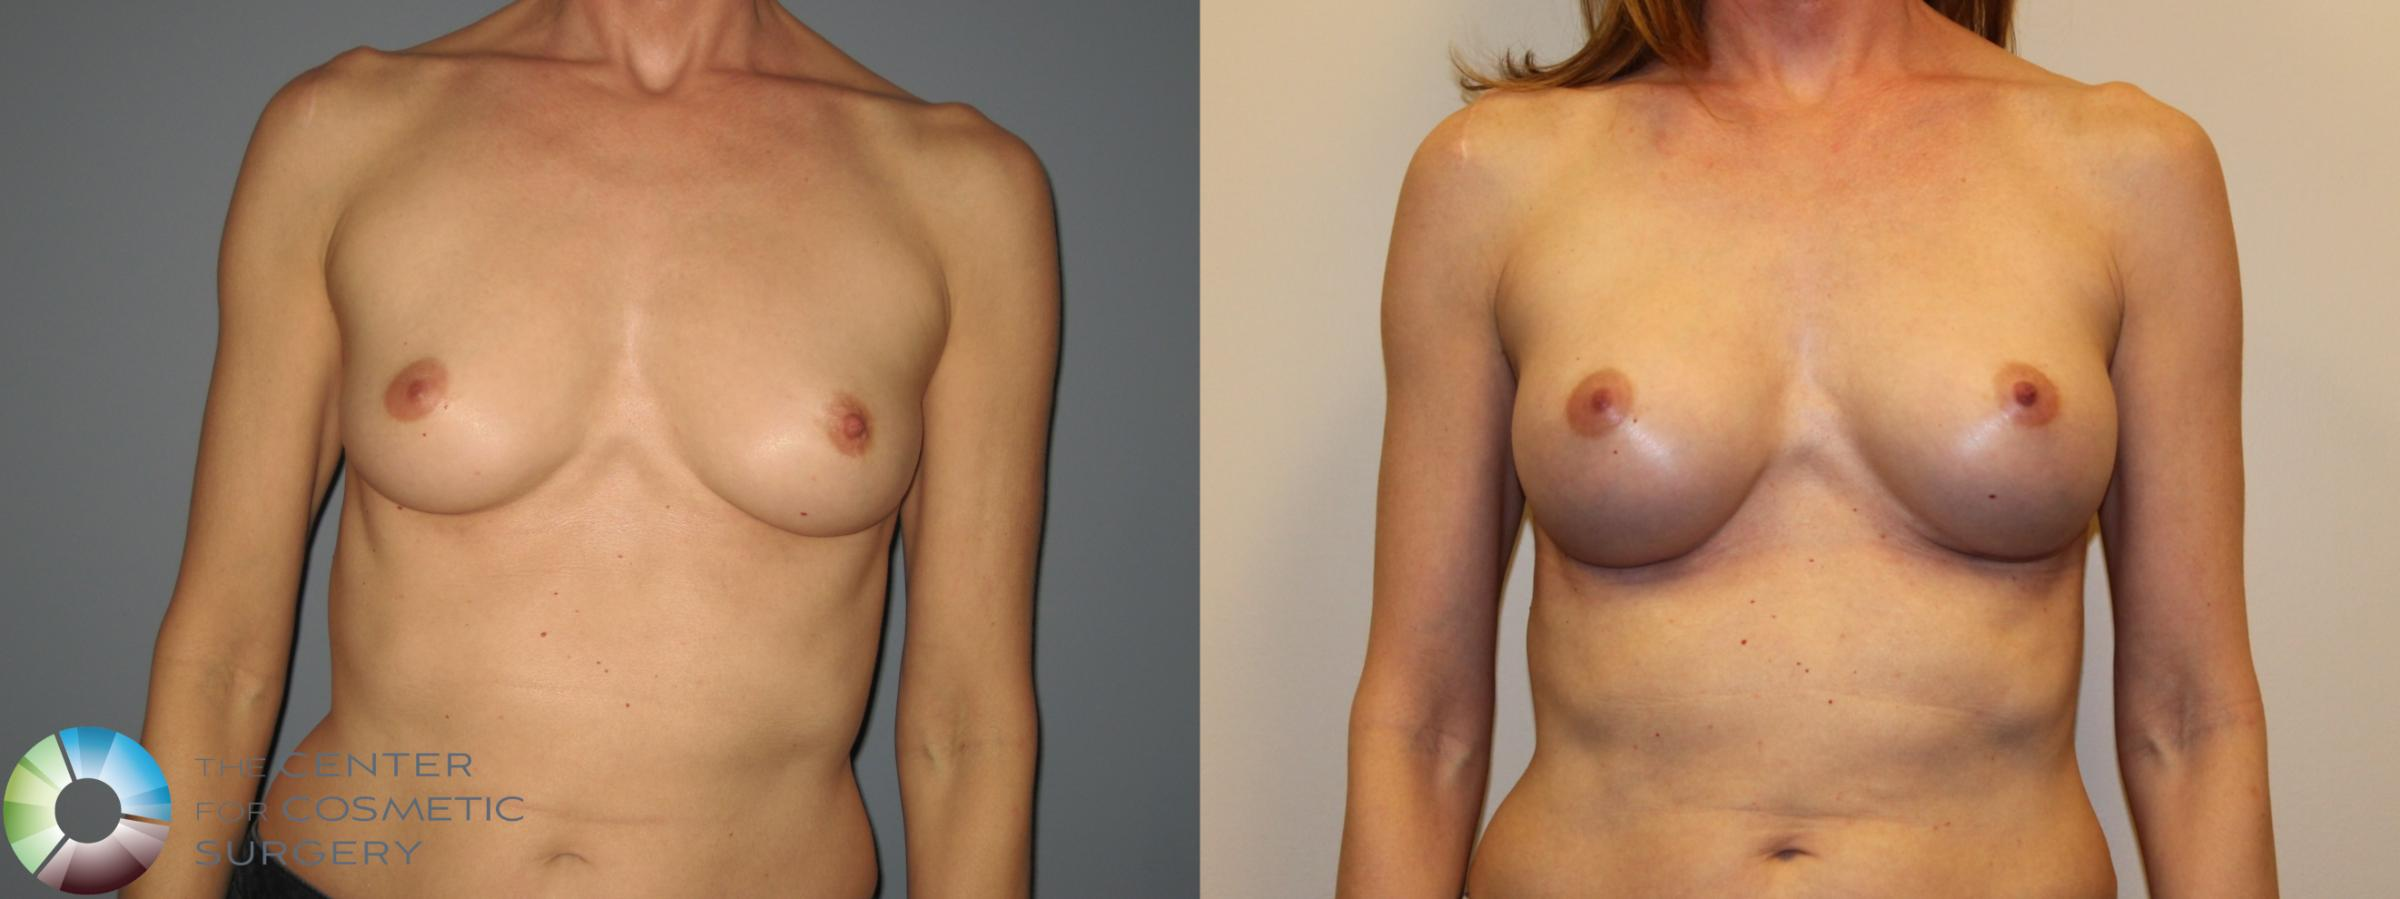 Breast Augmentation Case 718 Before & After View #1 | Golden, CO | The Center for Cosmetic Surgery